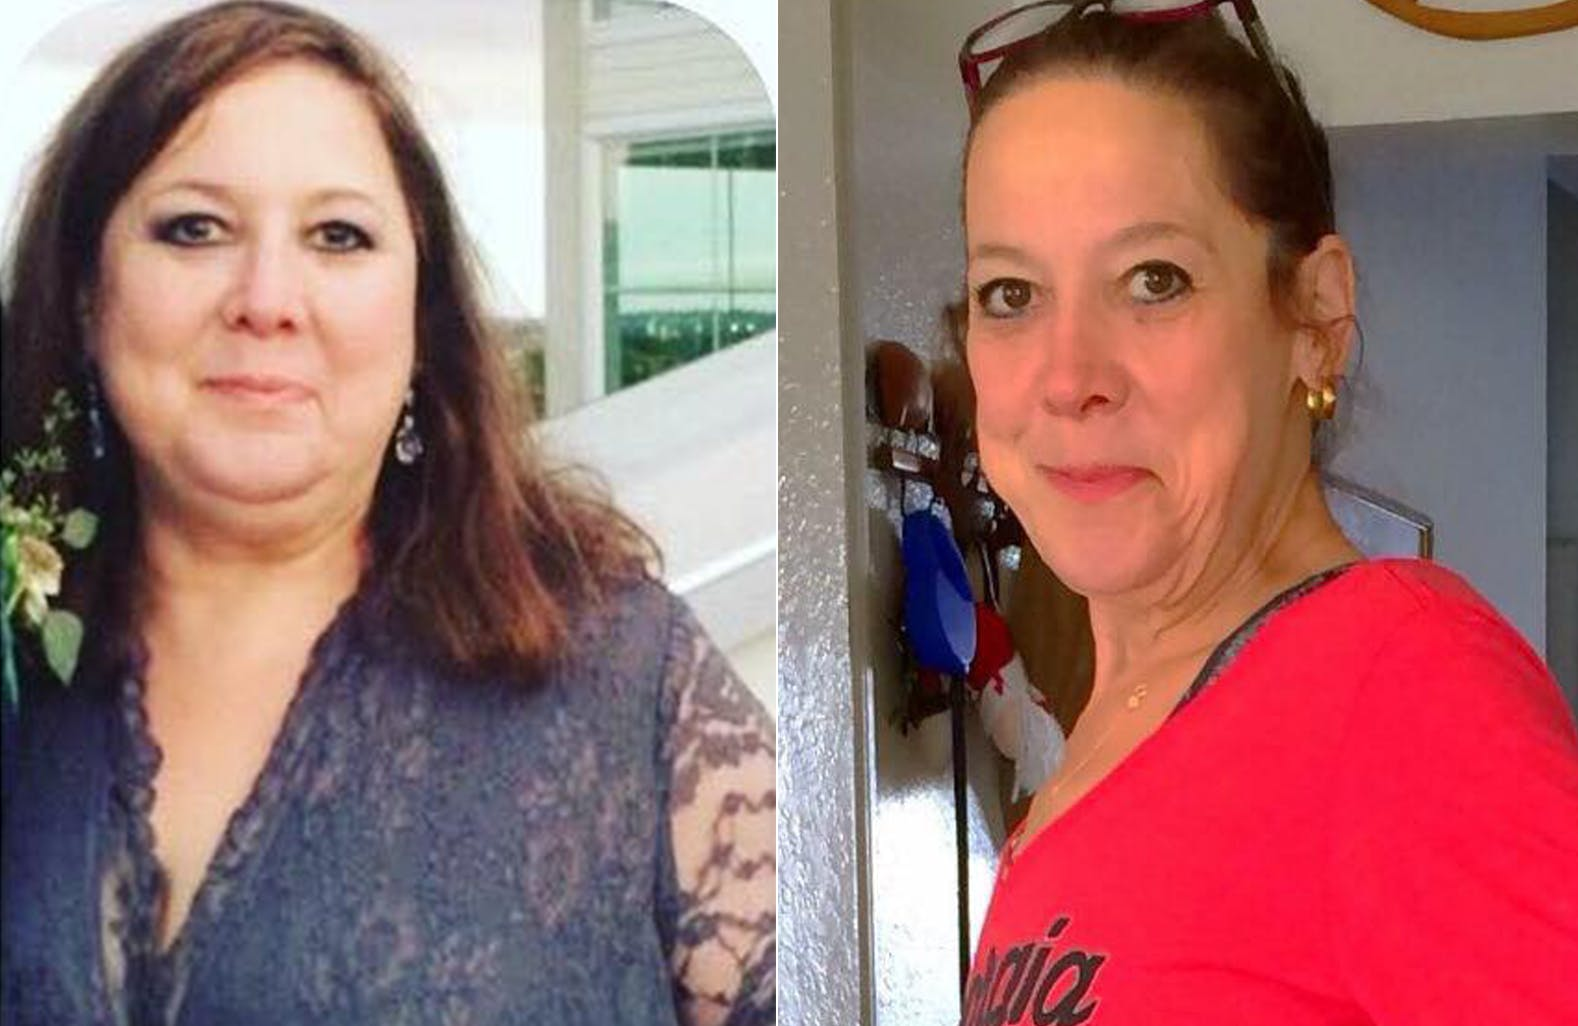 Long-term weight loss on keto: Maintaining a 'noexcuses' attitude